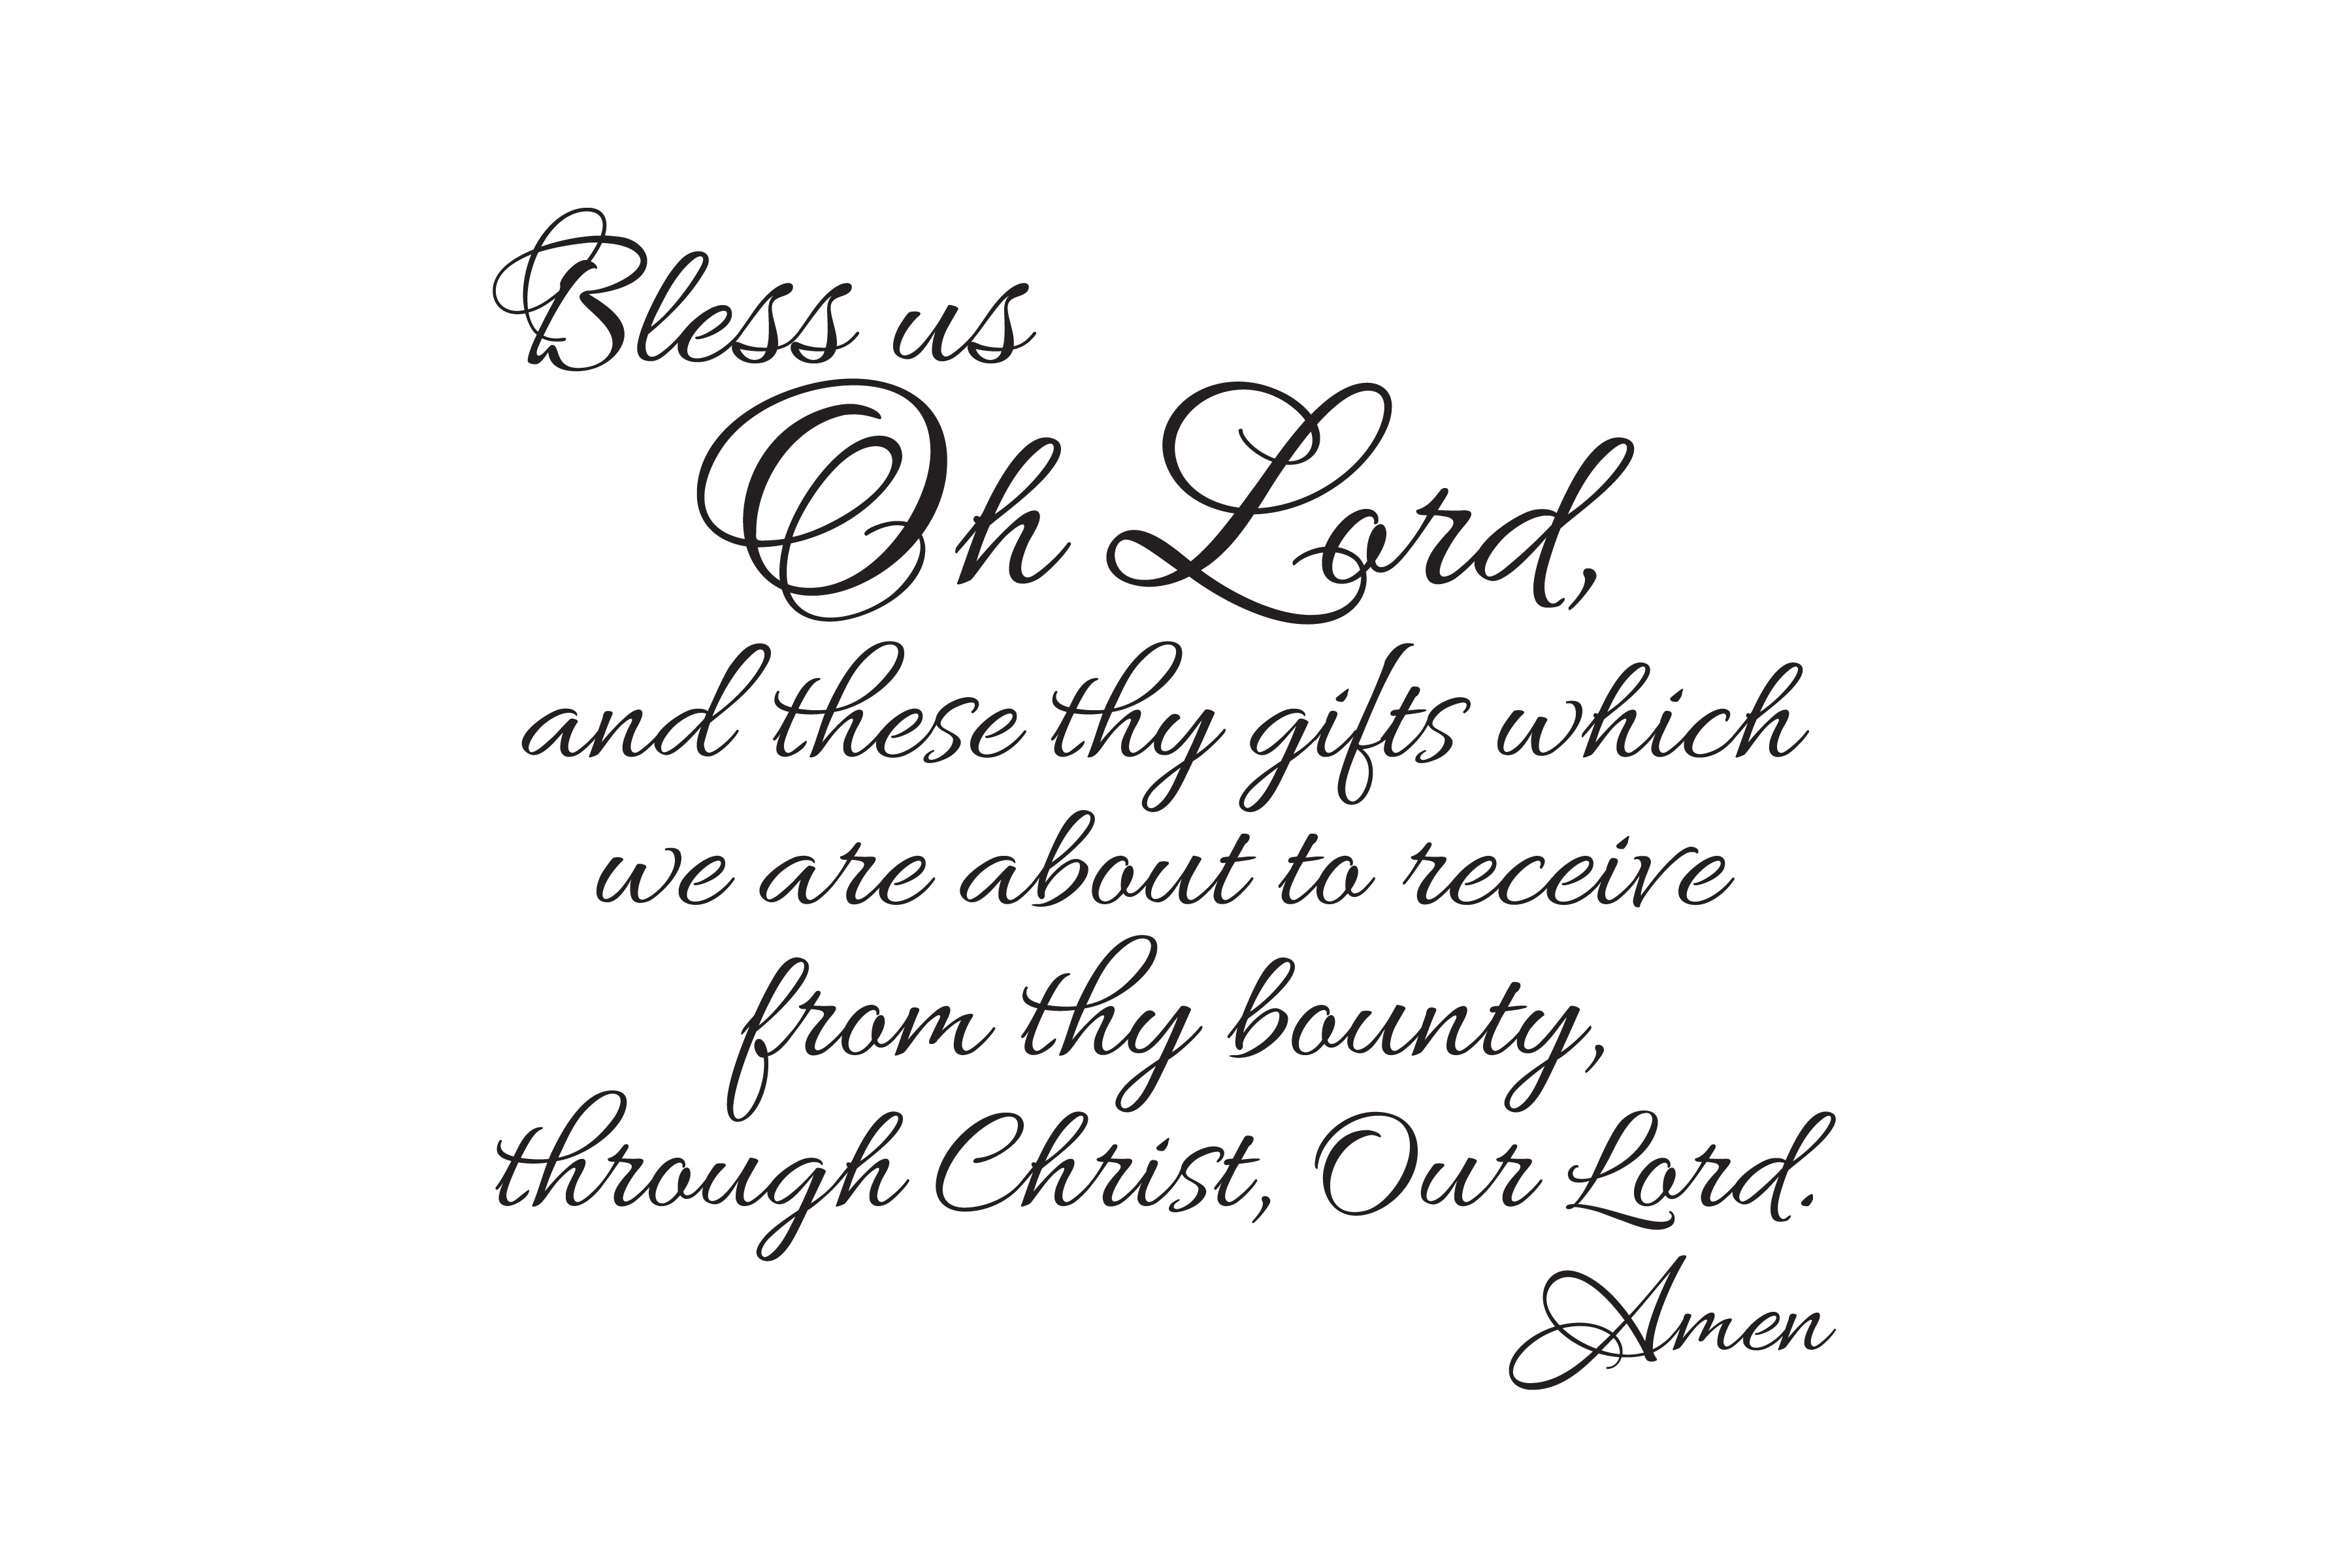 bless us oh lord and these thy gifts 1 common table prayer